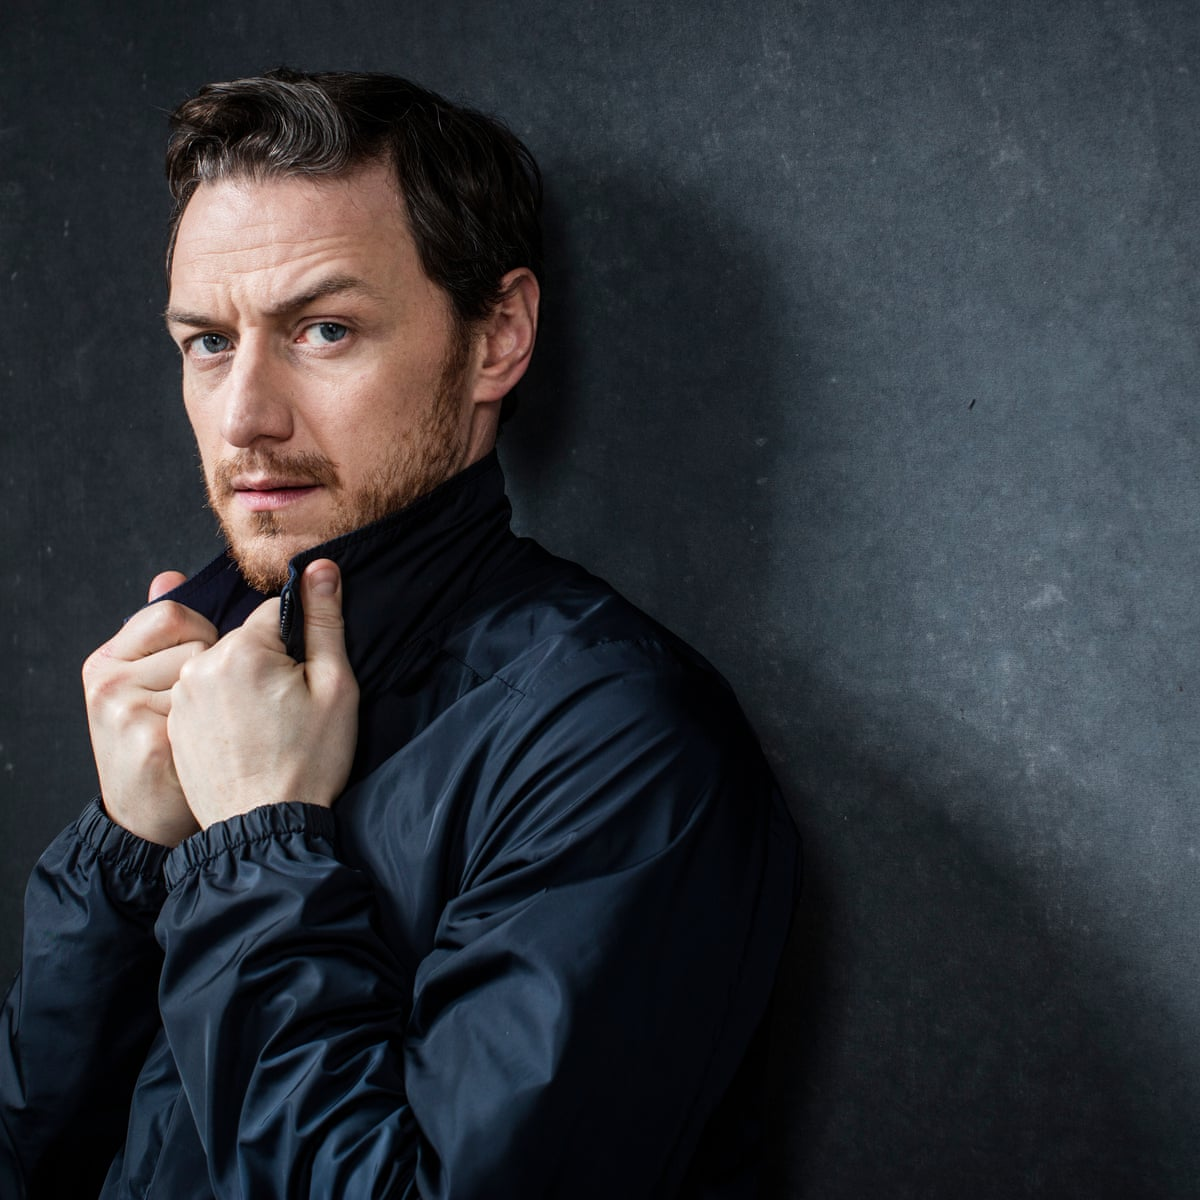 James McAvoy on X-Men, Split and not playing 'posh English dudes' any more  | Film | The Guardian